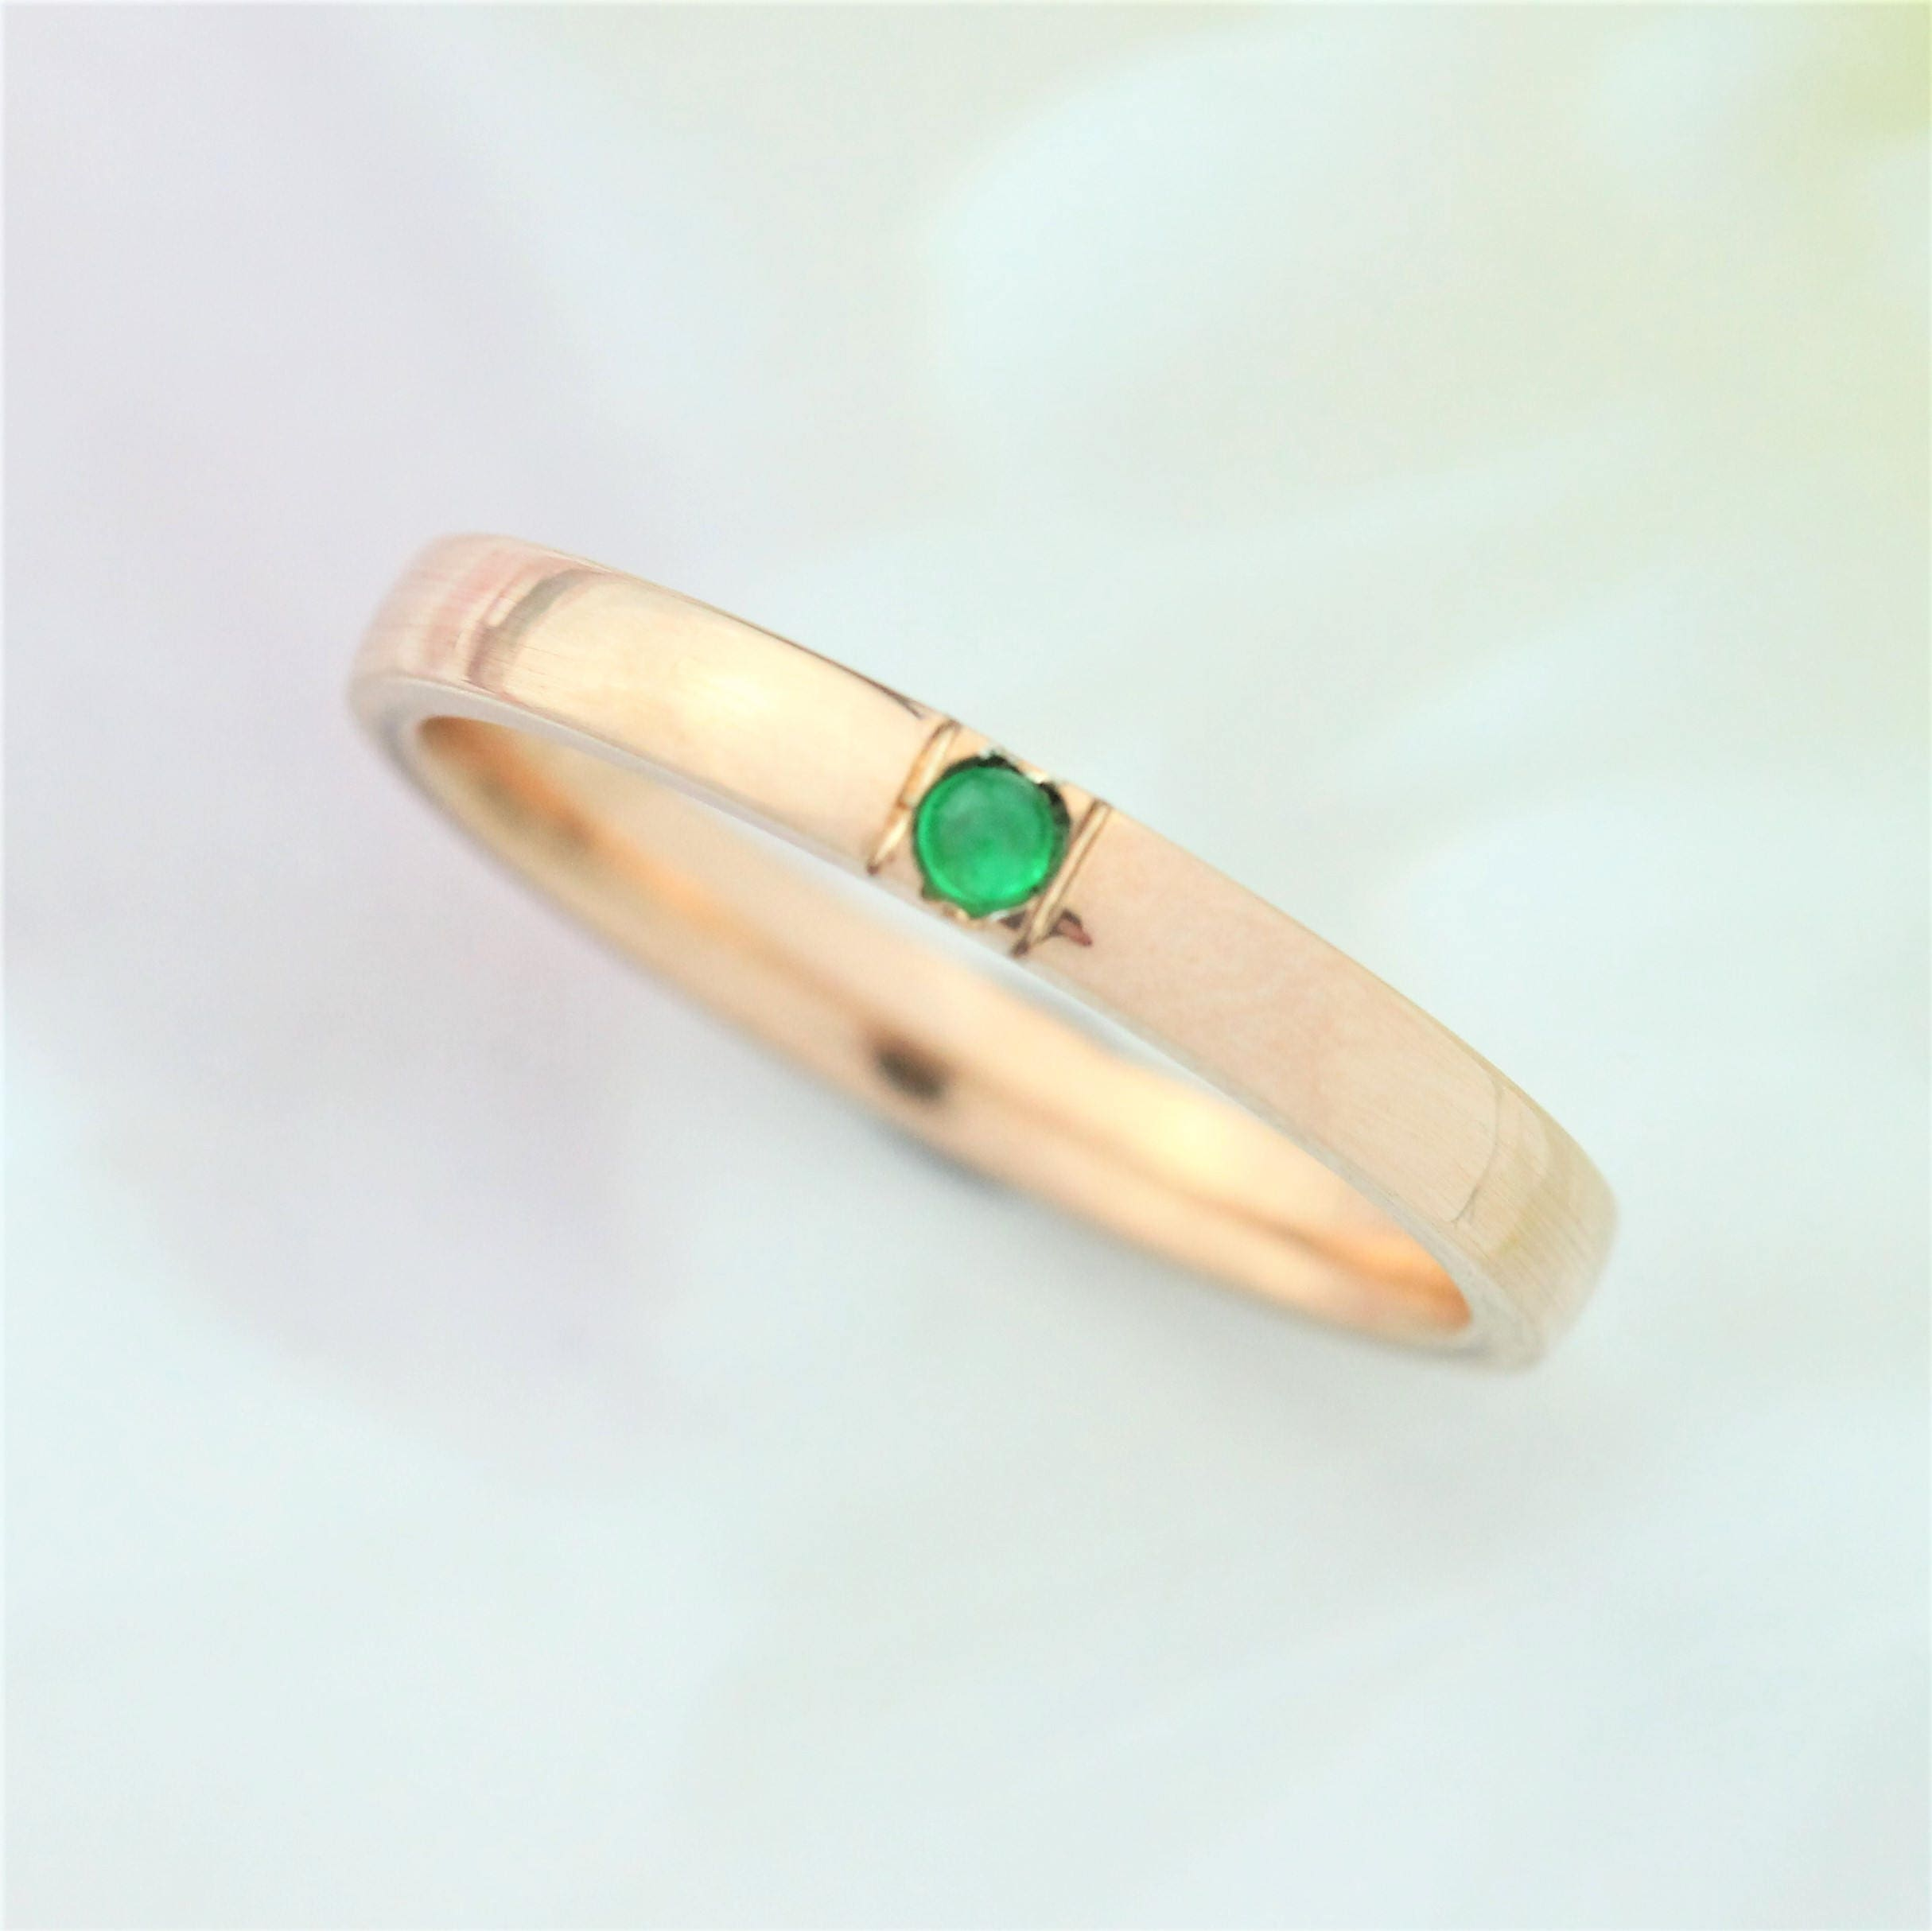 wedding at linear endler look ring diamond designs slim emerald claudia